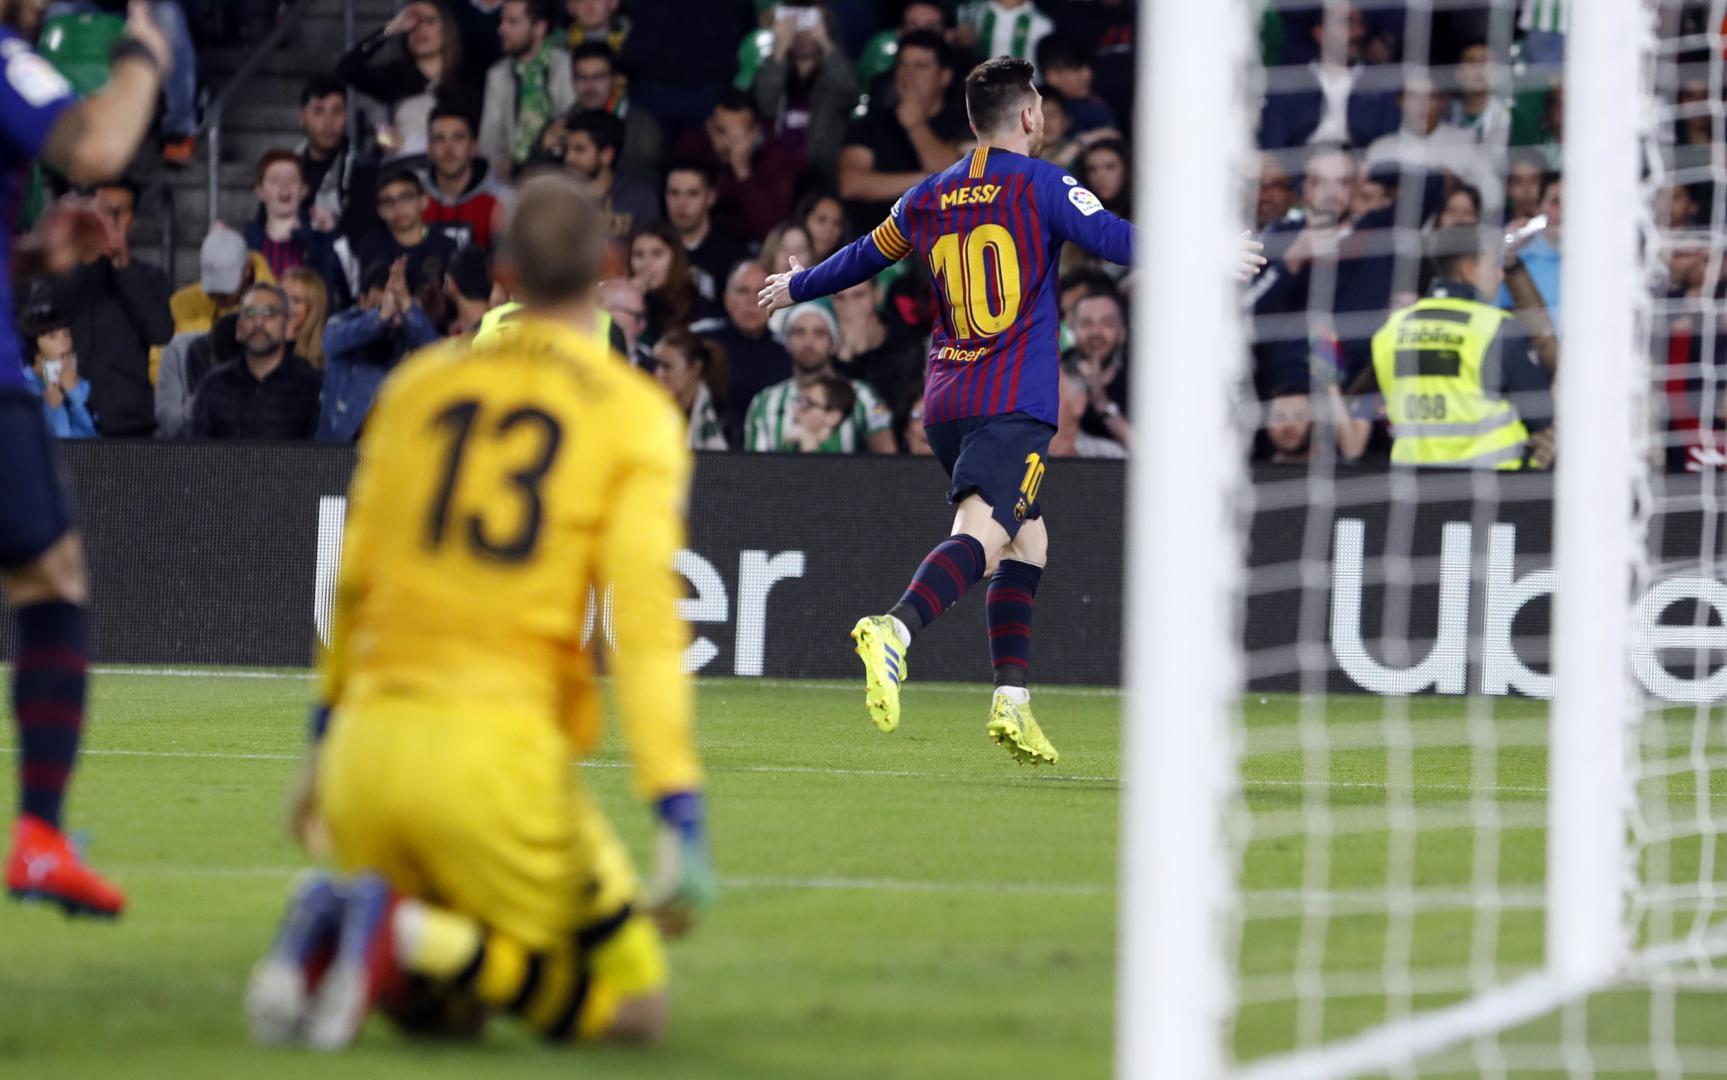 The Goal From Messi That Delighted The Benito Villamarin